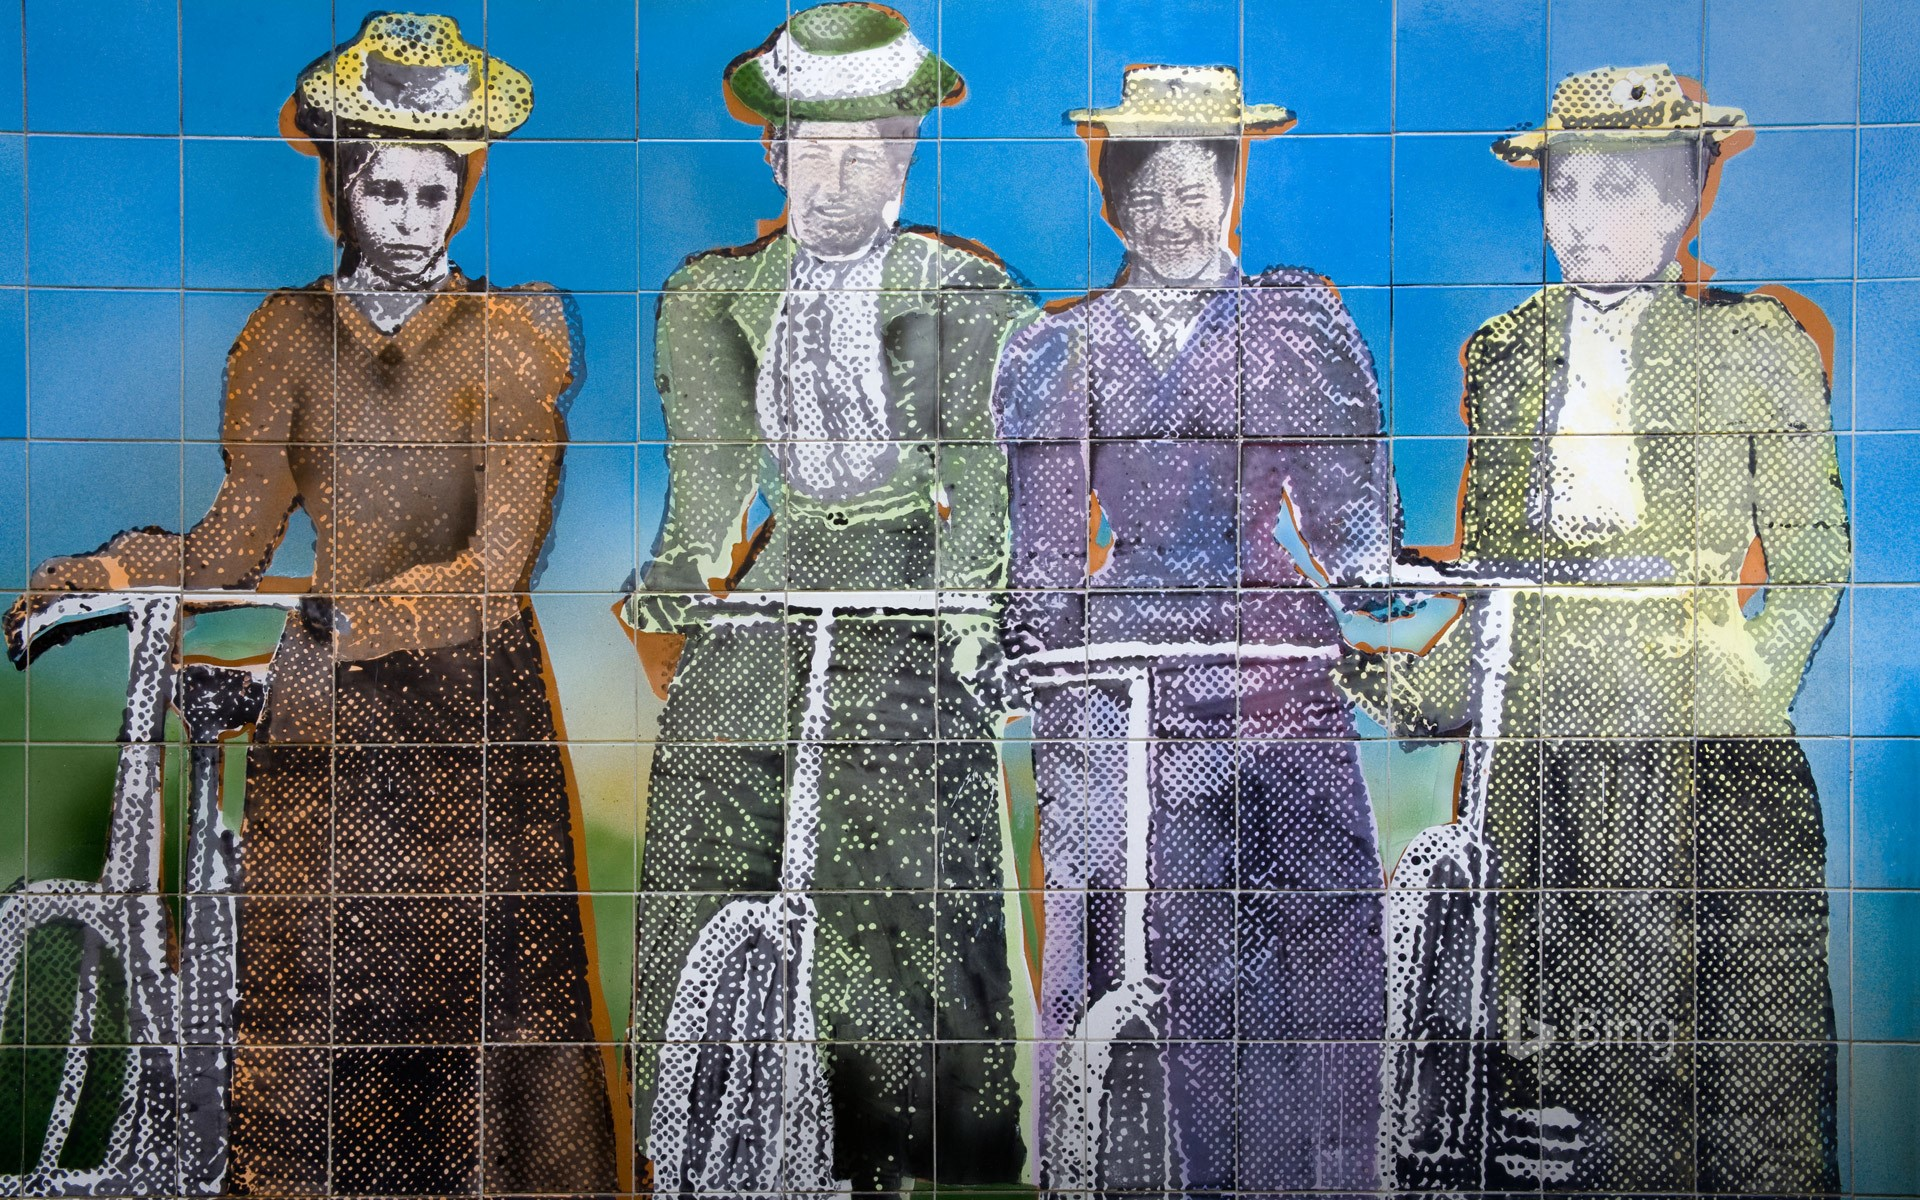 Women's suffrage tile mural outside the Auckland Art Gallery, New Zealand (© Robert Harding/Alamy)